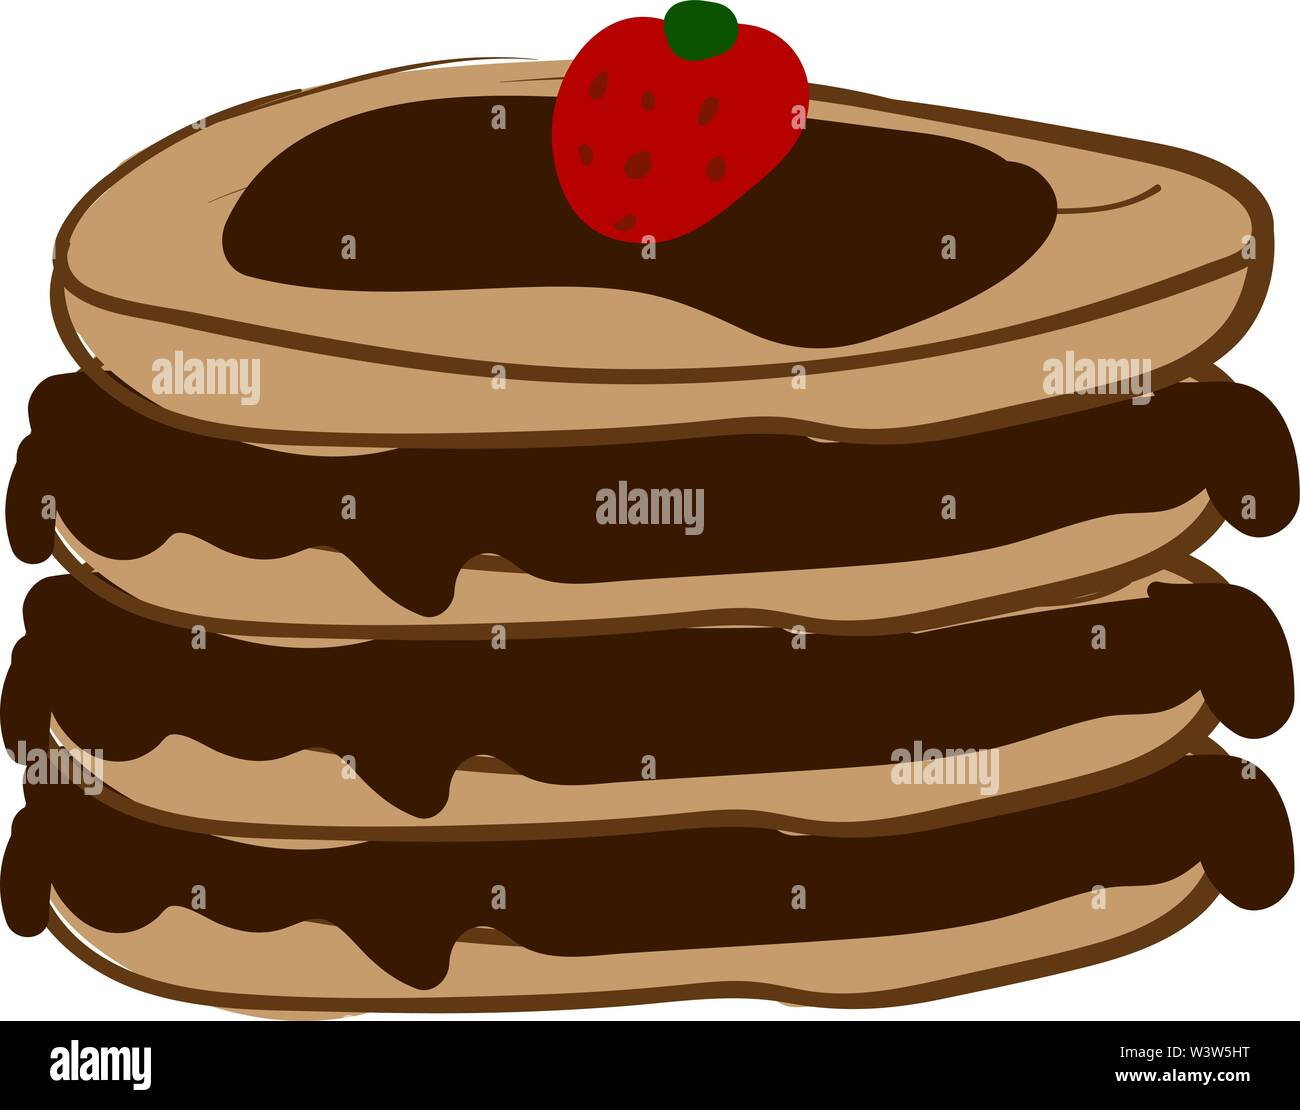 Pancake with strawberry, illustration, vector on white background. - Stock Image